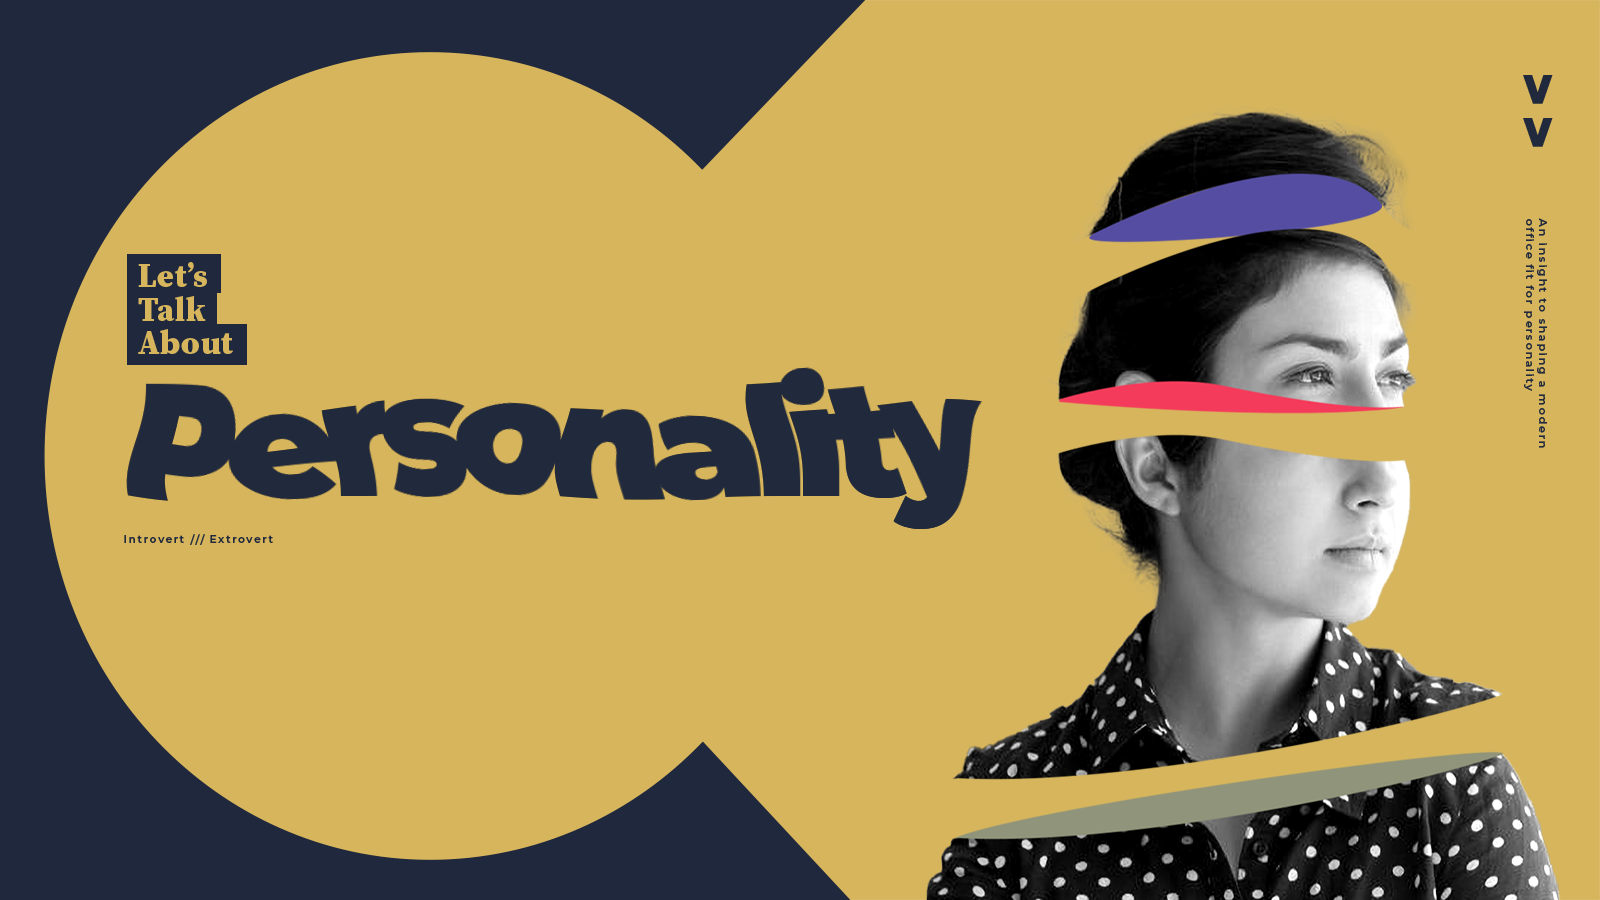 What's Personality Got To Do With It?